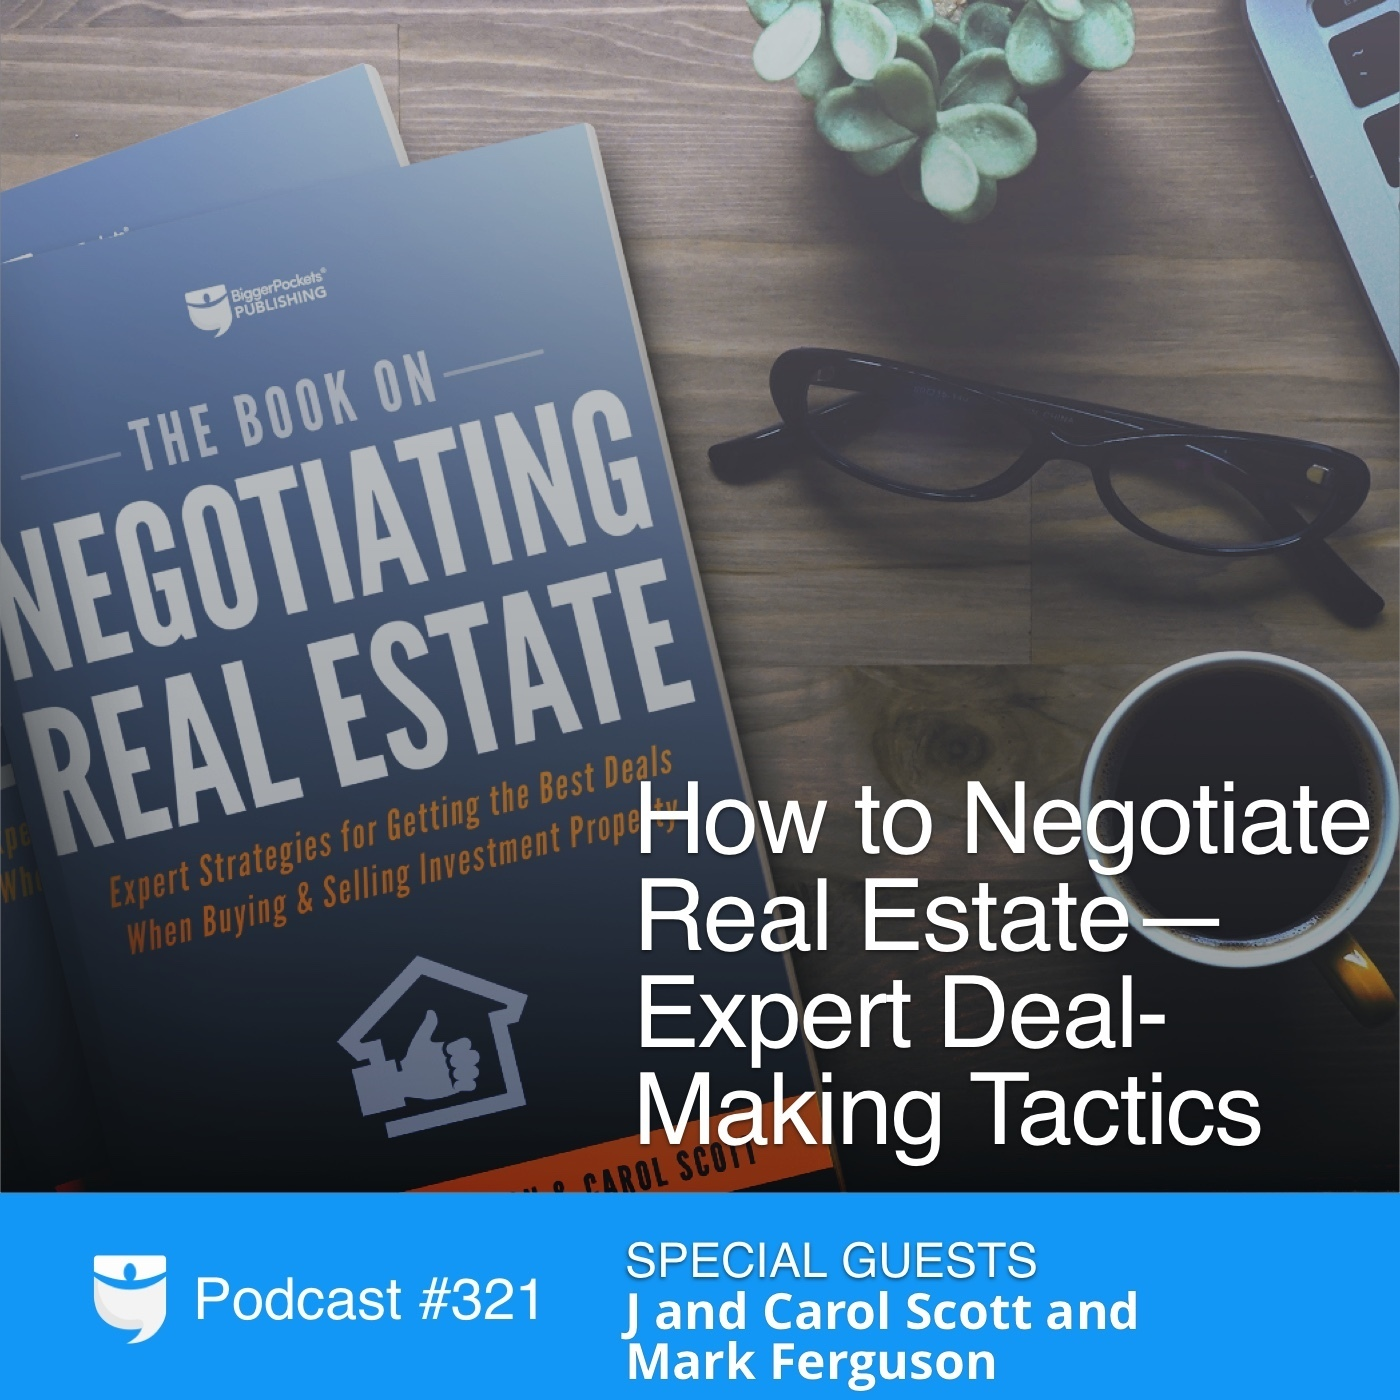 #321: How to Negotiate Real Estate—Expert Deal-Making Tactics with J and Carol Scott and Mark Ferguson